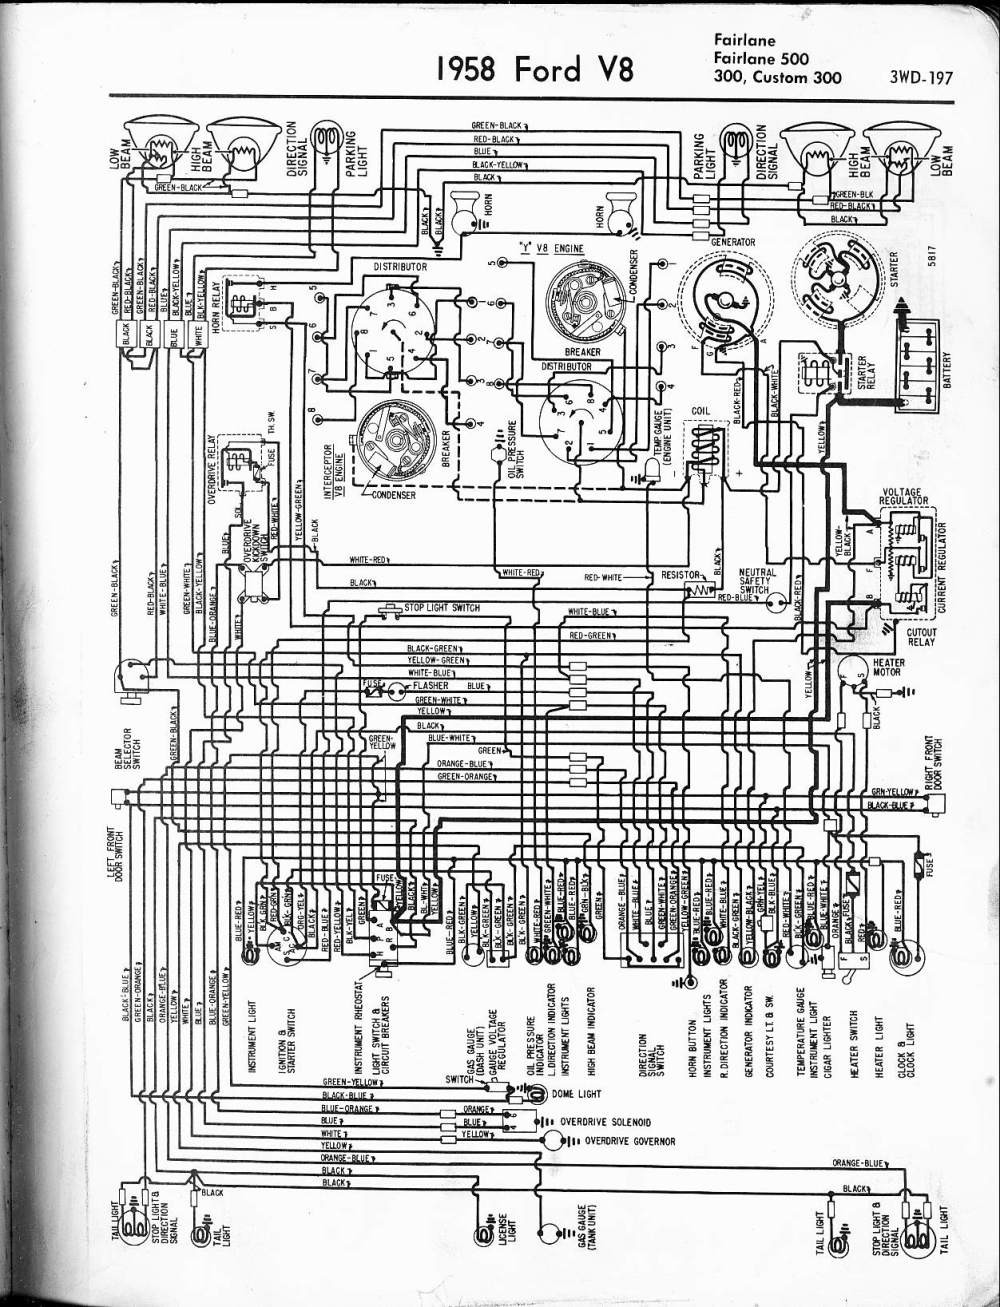 medium resolution of 1958 ford wiring diagram wiring diagram third level 1958 chevy truck wiring diagram 1958 edsel wiring diagram